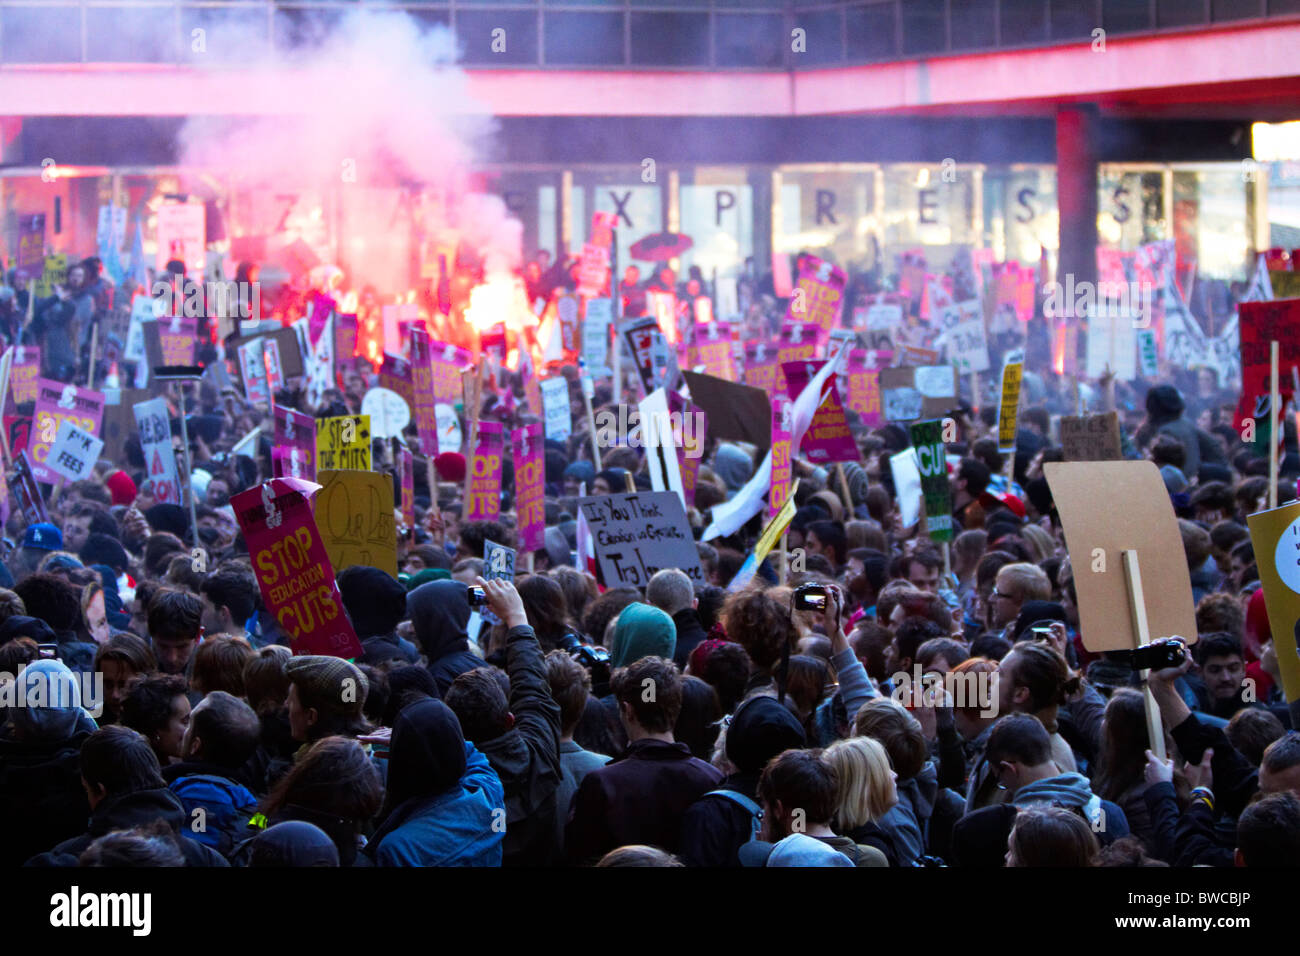 Protester lets off a flare during student protests against tuition fees - Stock Image